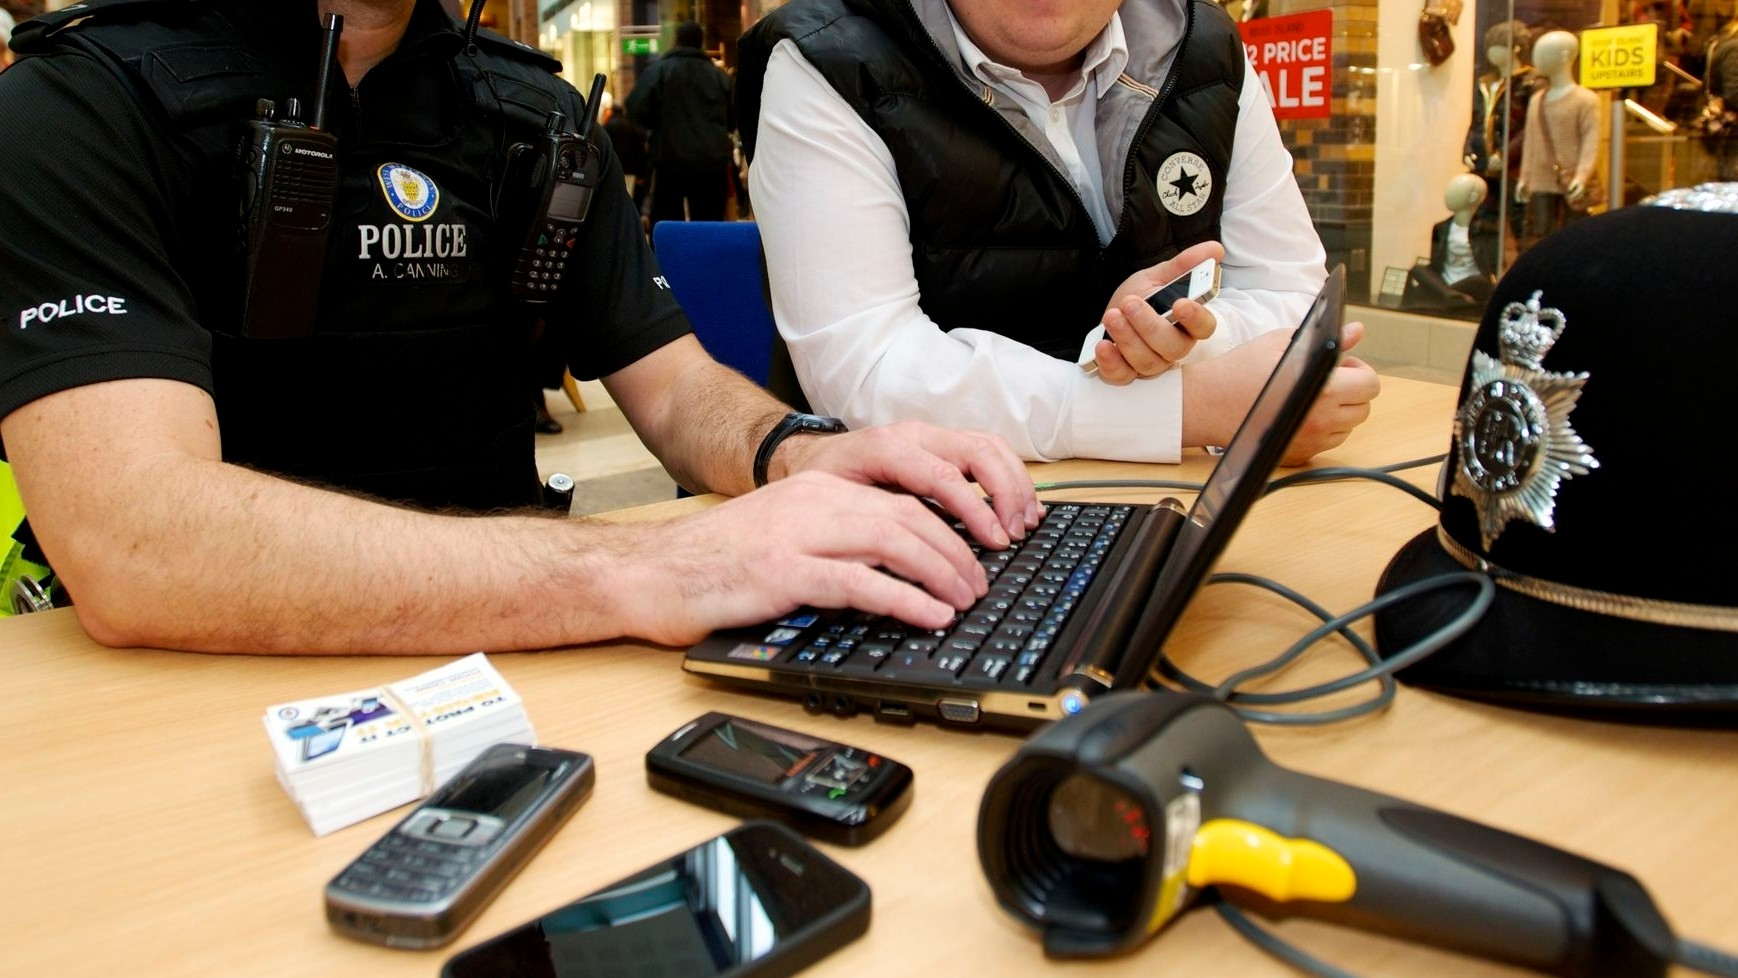 UK Police Aren't Doing Enough to Keep Personal Data Secure